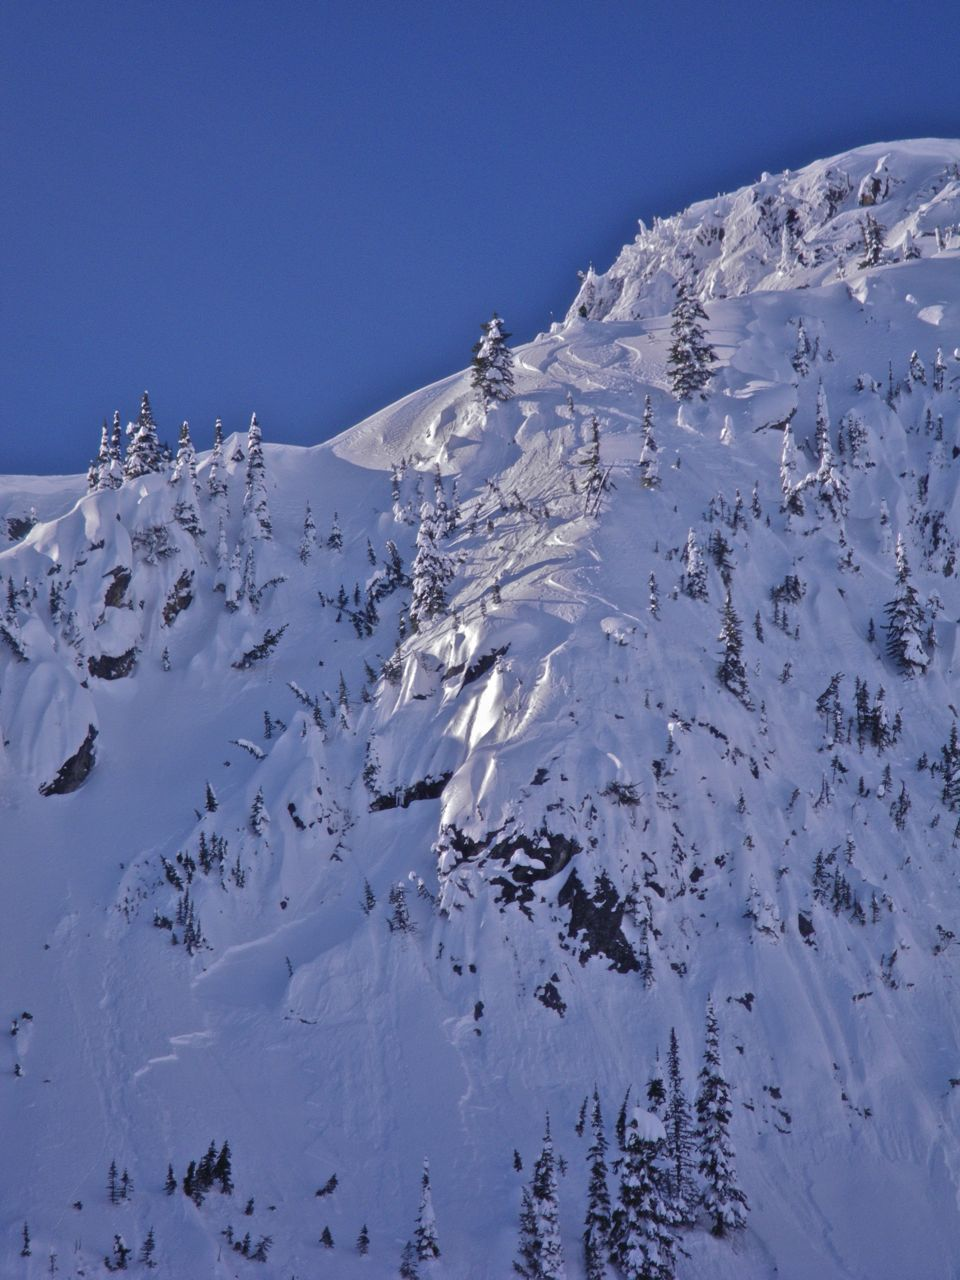 One of the coolest lines I have ever skied, until the rocky take off